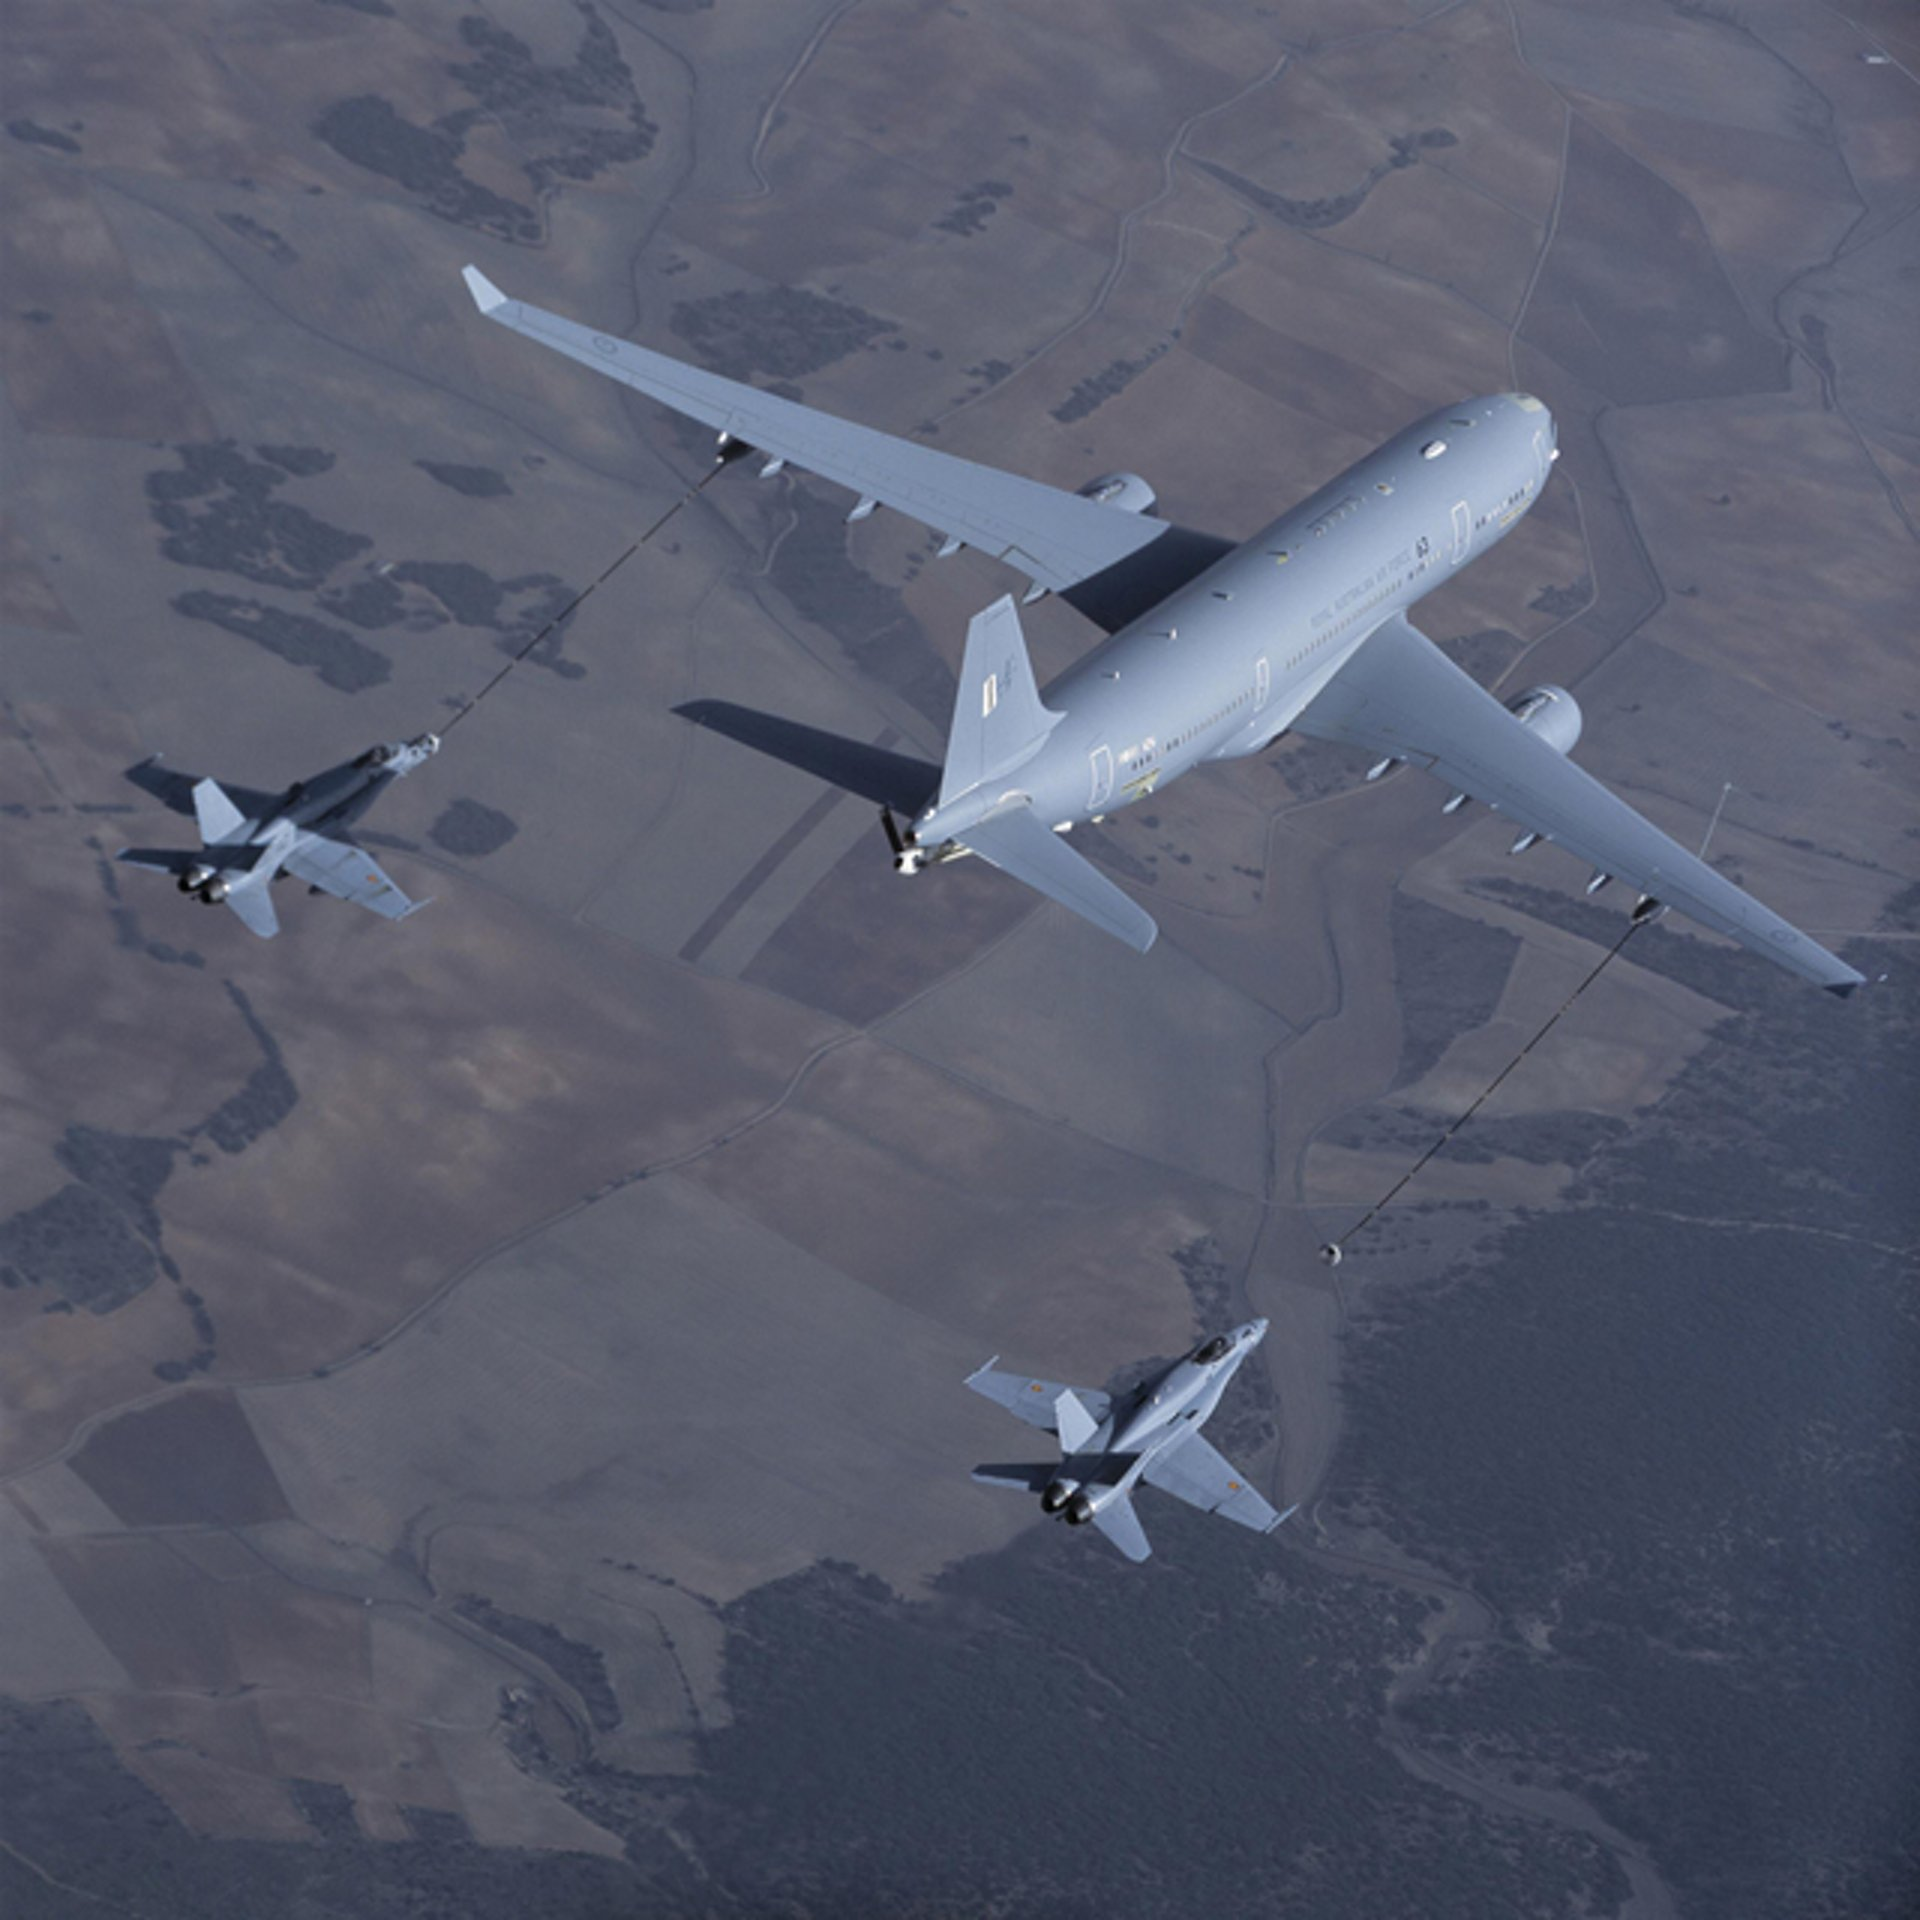 An A330 Multi Role Tanker Transport performs a refuelling evaluation mission with two fighter aircraft.